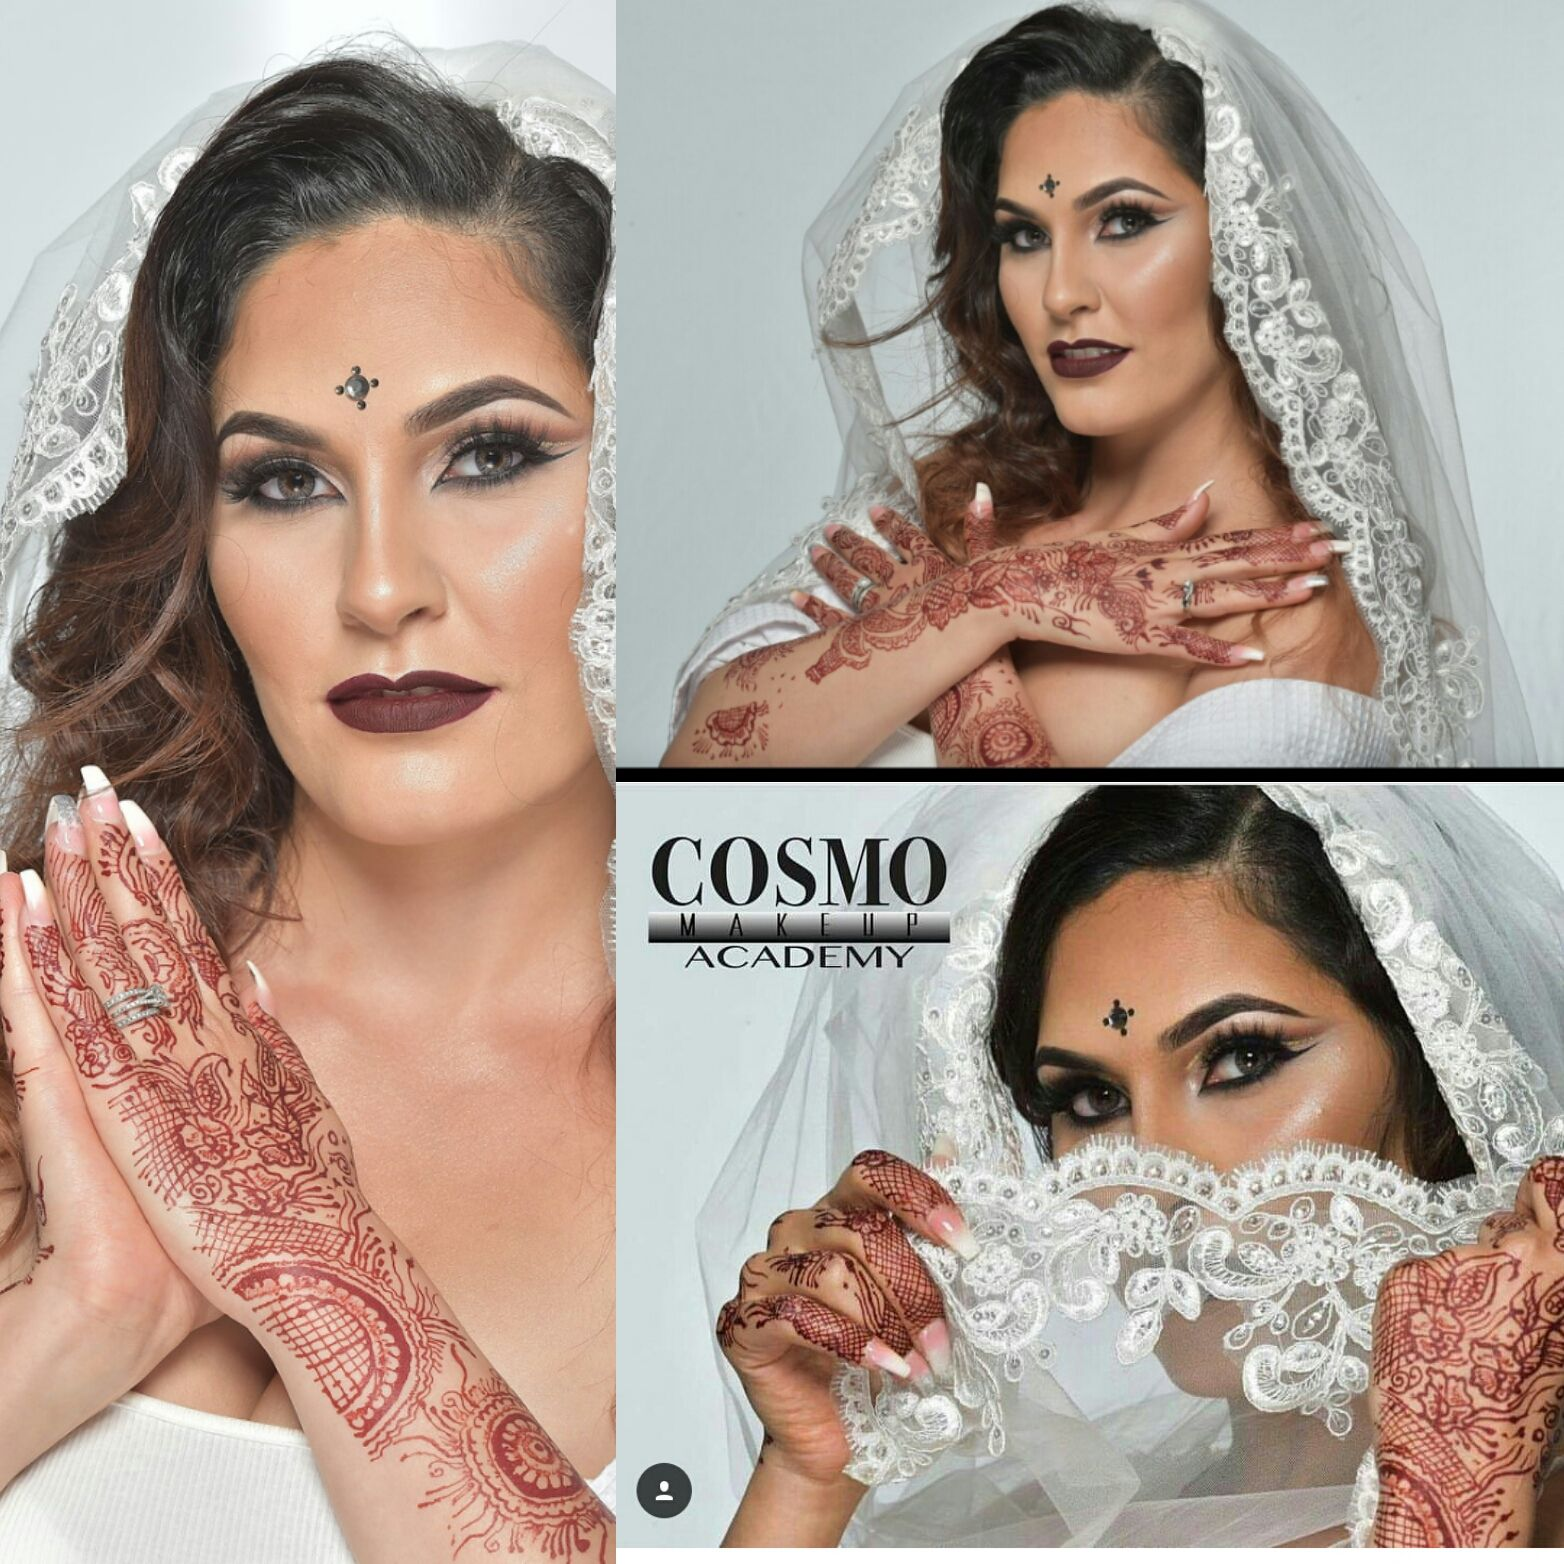 Bridal Henna Shoot for Cosmo Makeup Academy Services